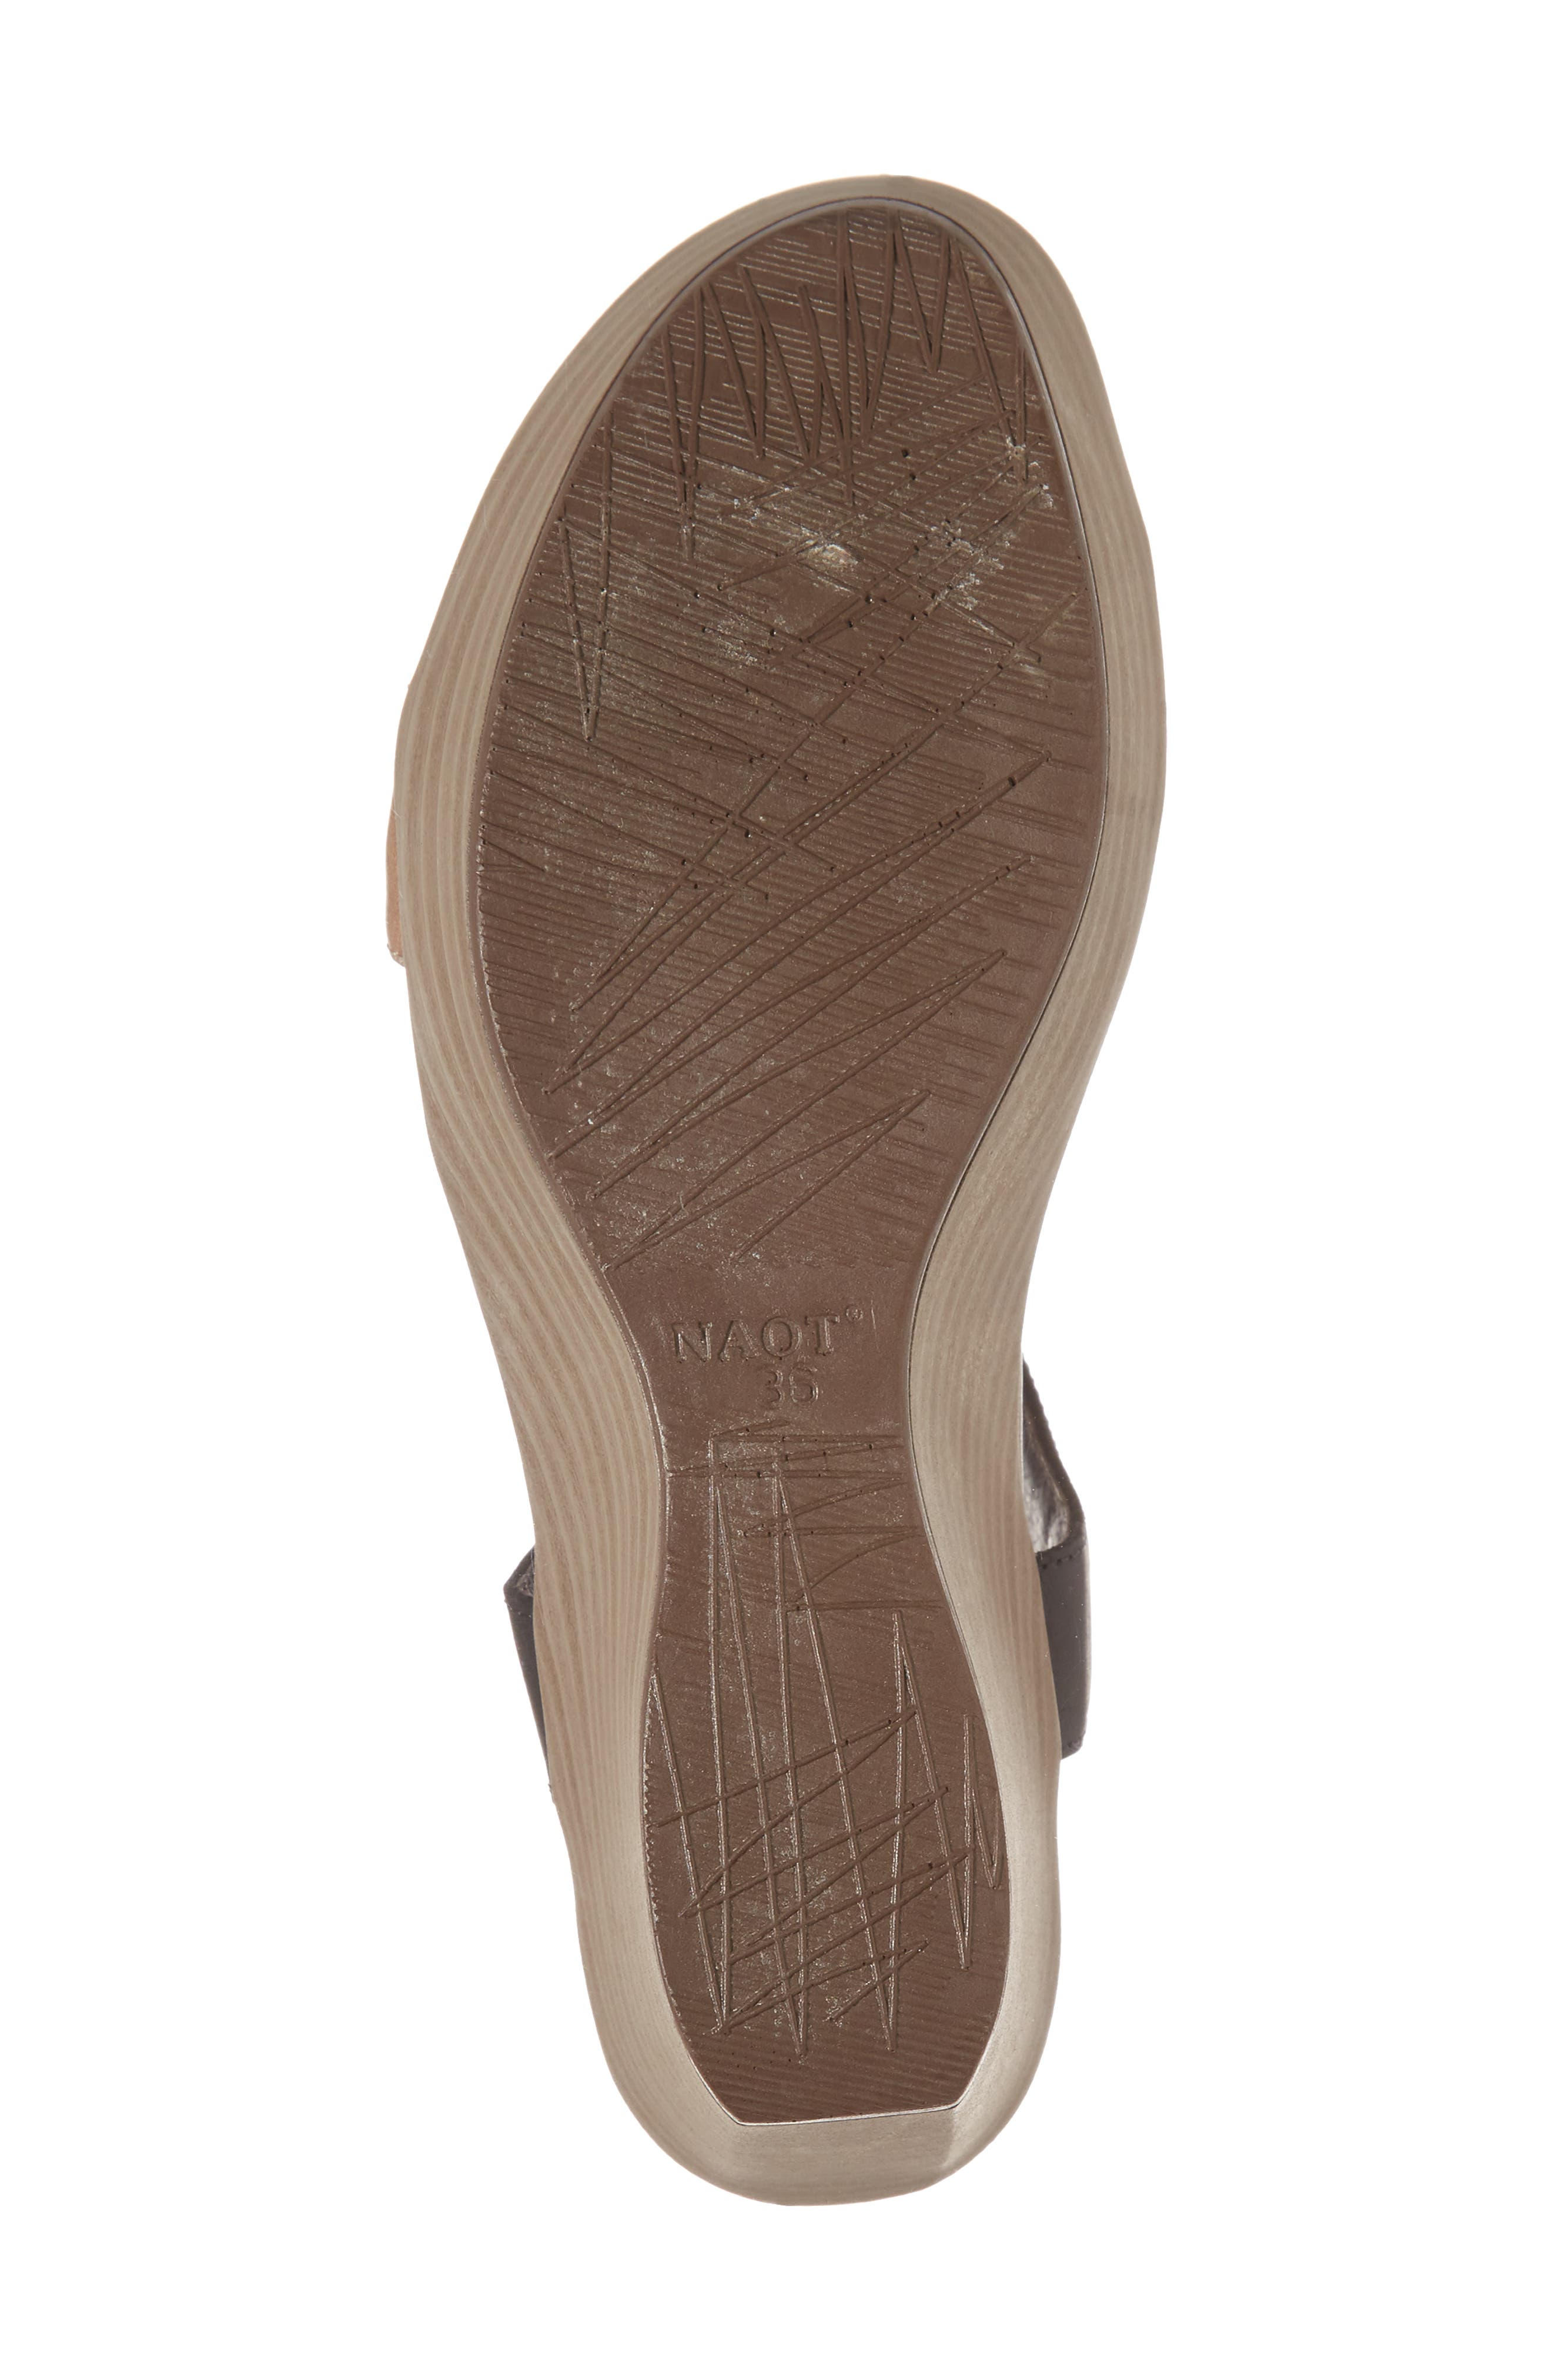 Caprice Wedge Sandal,                             Alternate thumbnail 6, color,                             TAN LEATHER